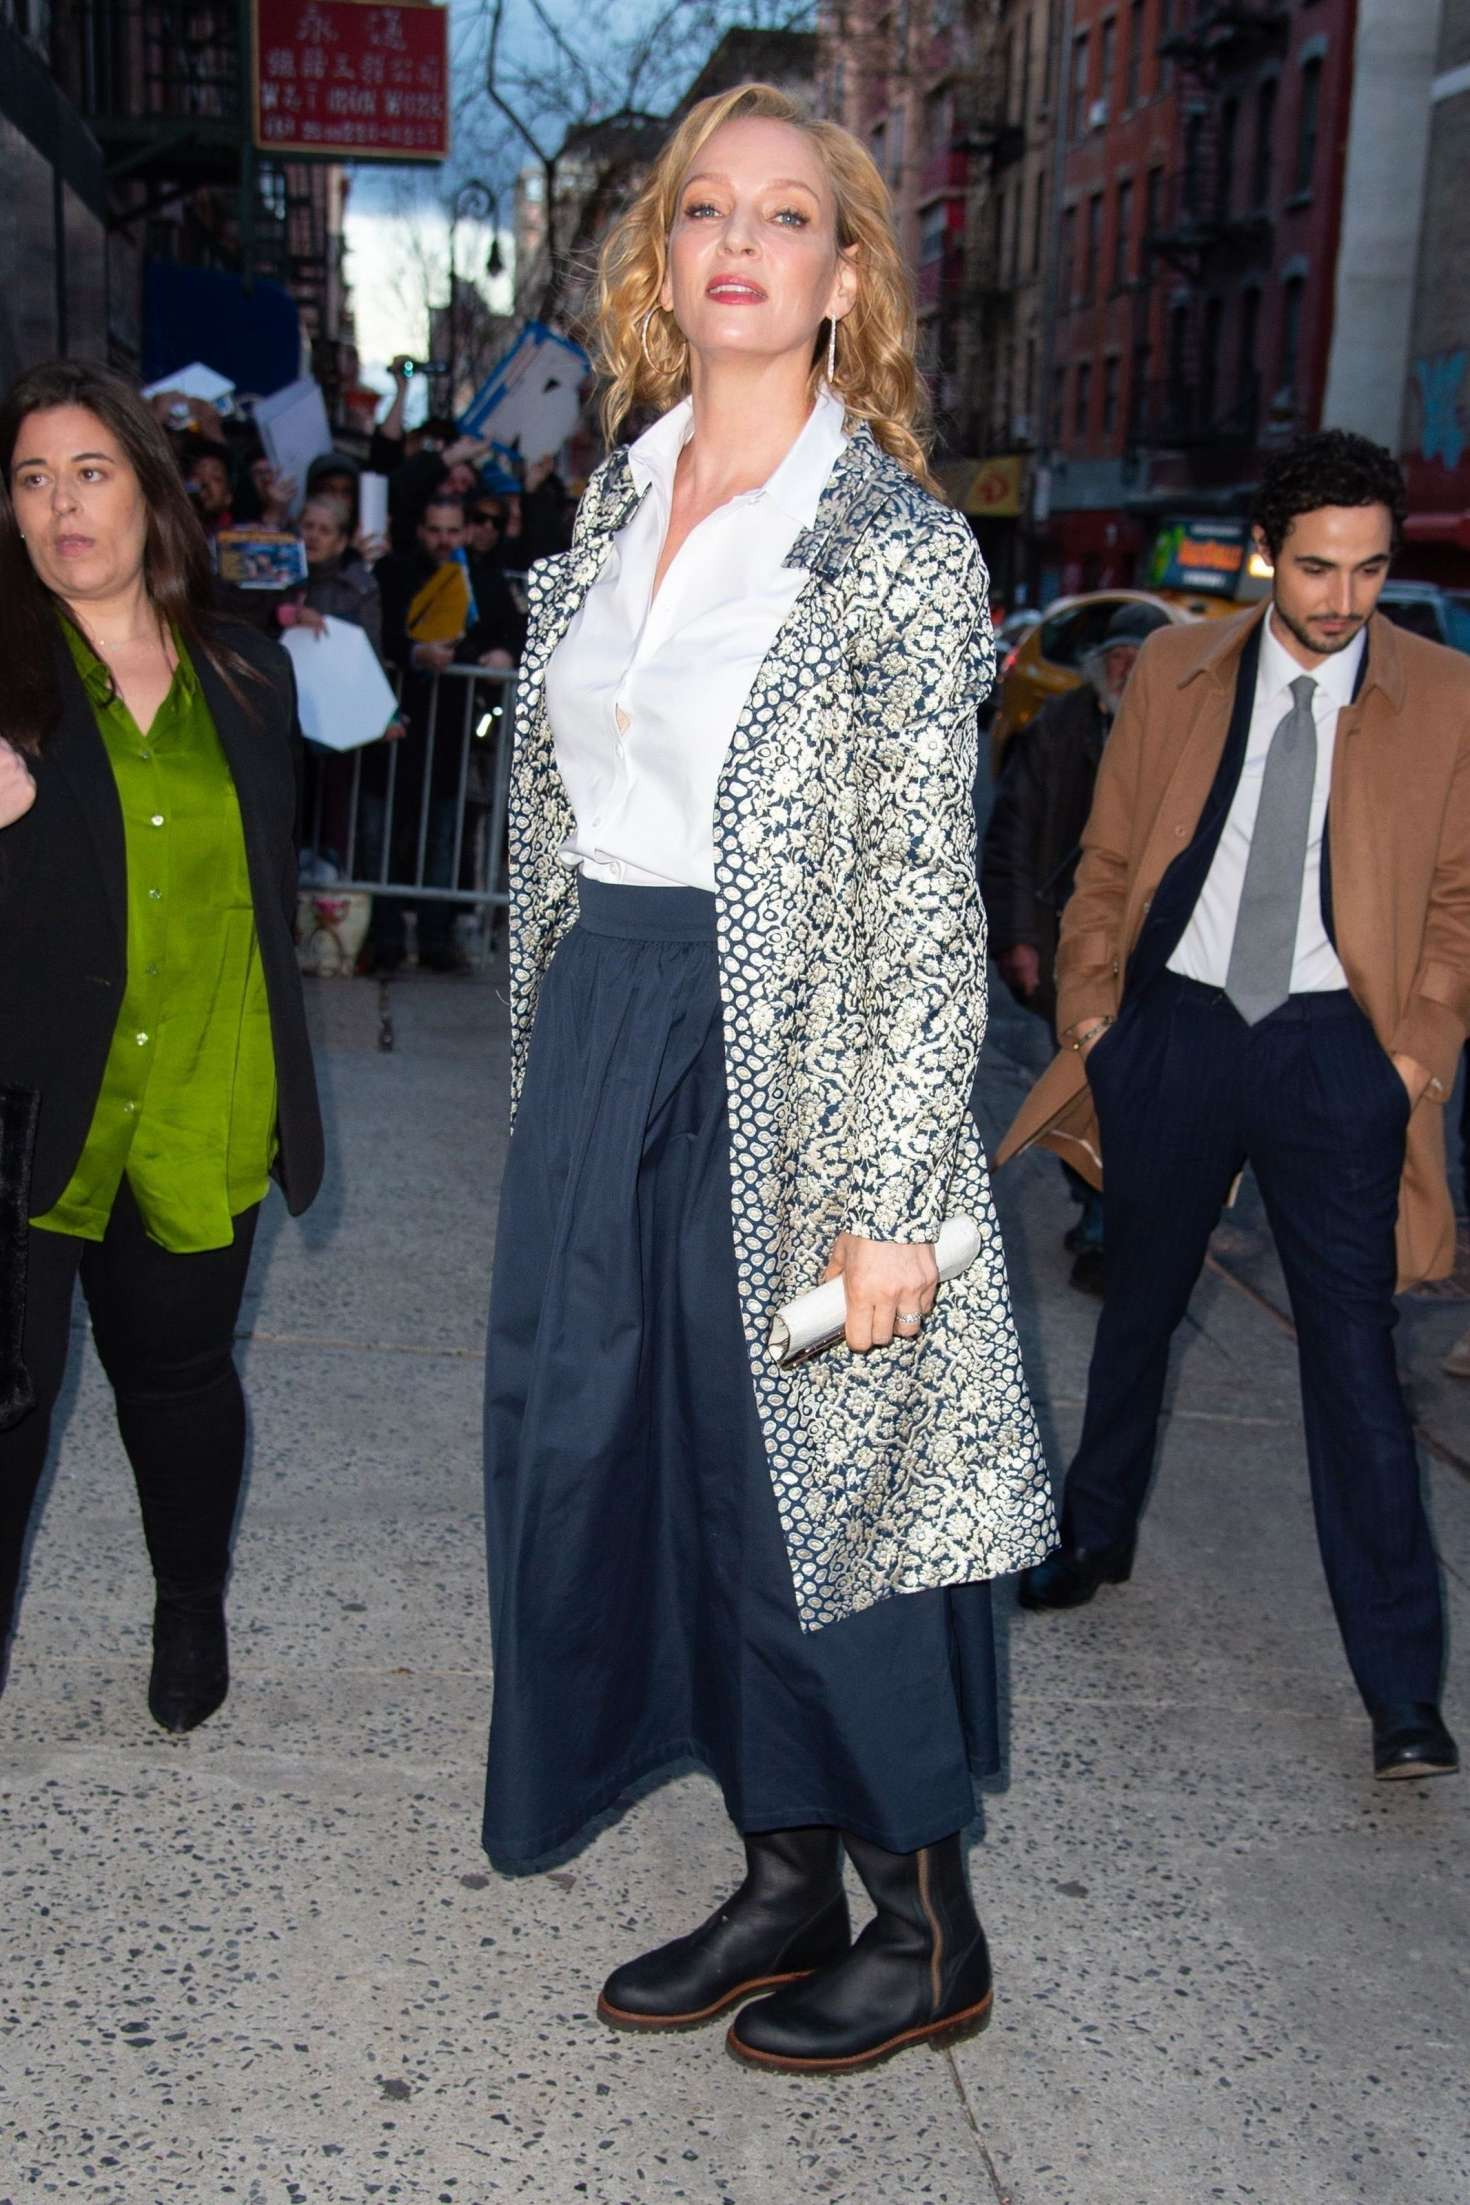 Uma Thurman 2019 : Uma Thurman: Arrives at the Chambers Premiere -03